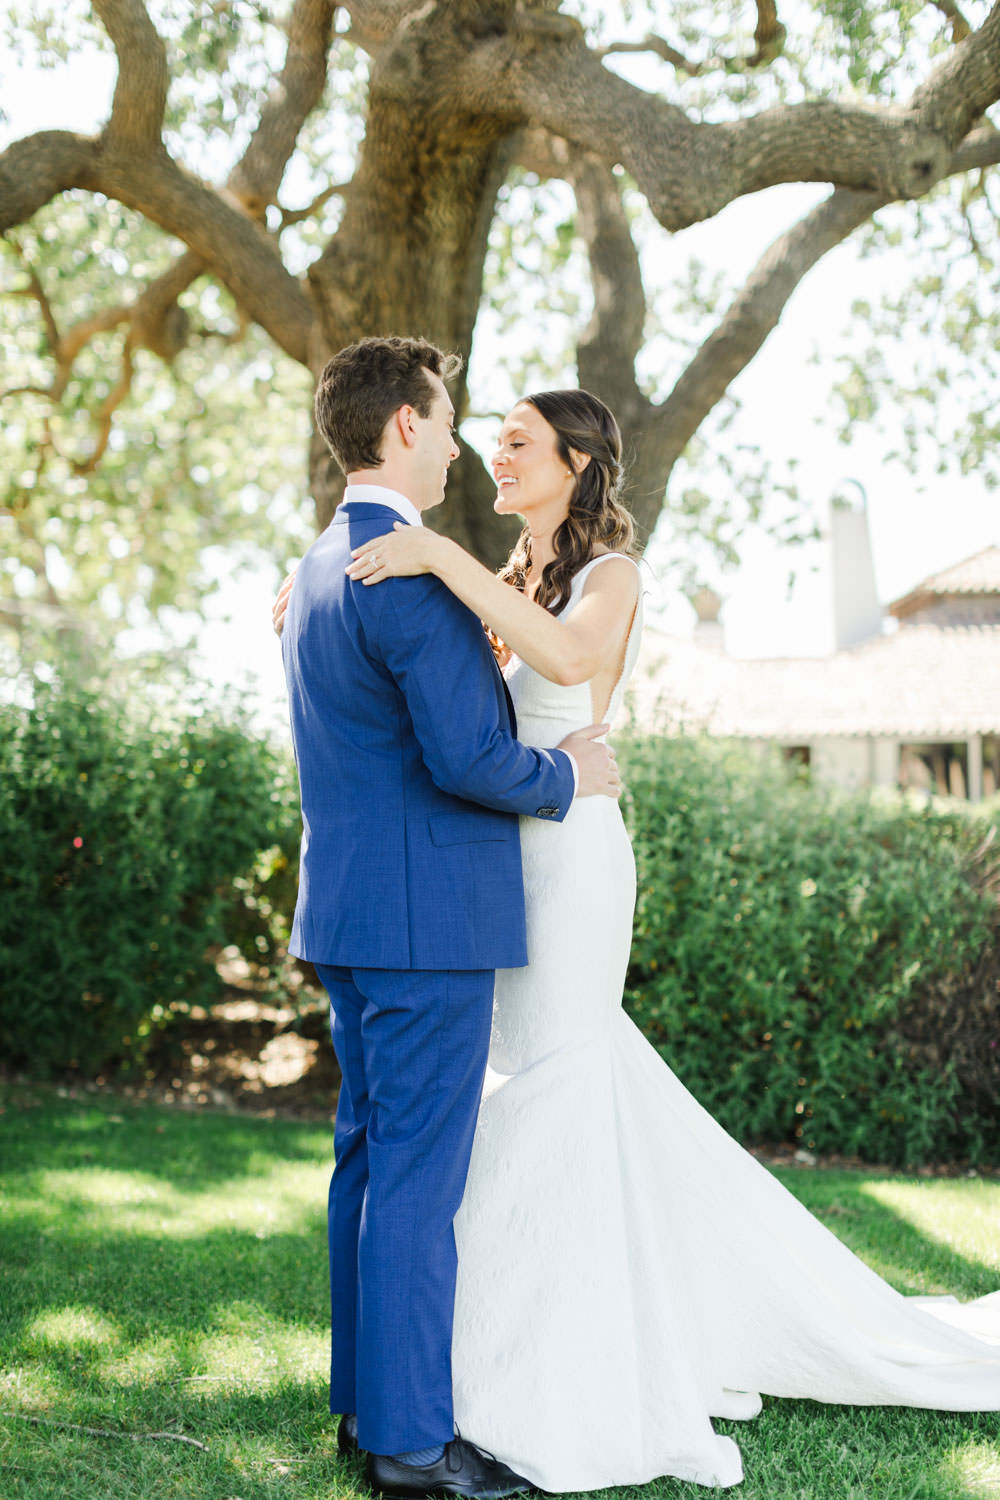 Groom in navy suit for first look with his bride, Cavin Elizabeth Photography